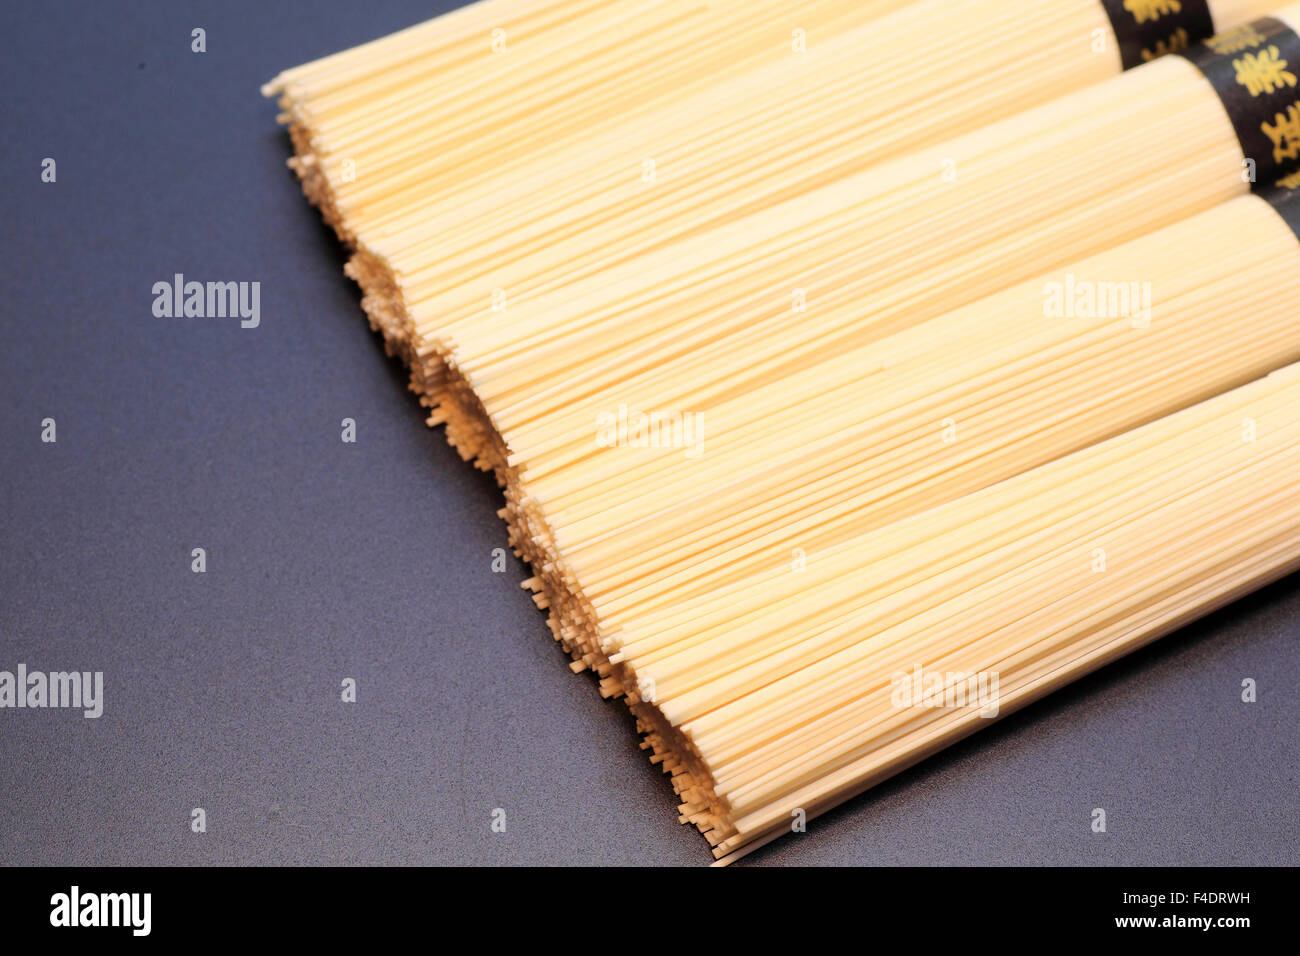 Japanese vermicellifine noodles islated - Stock Image